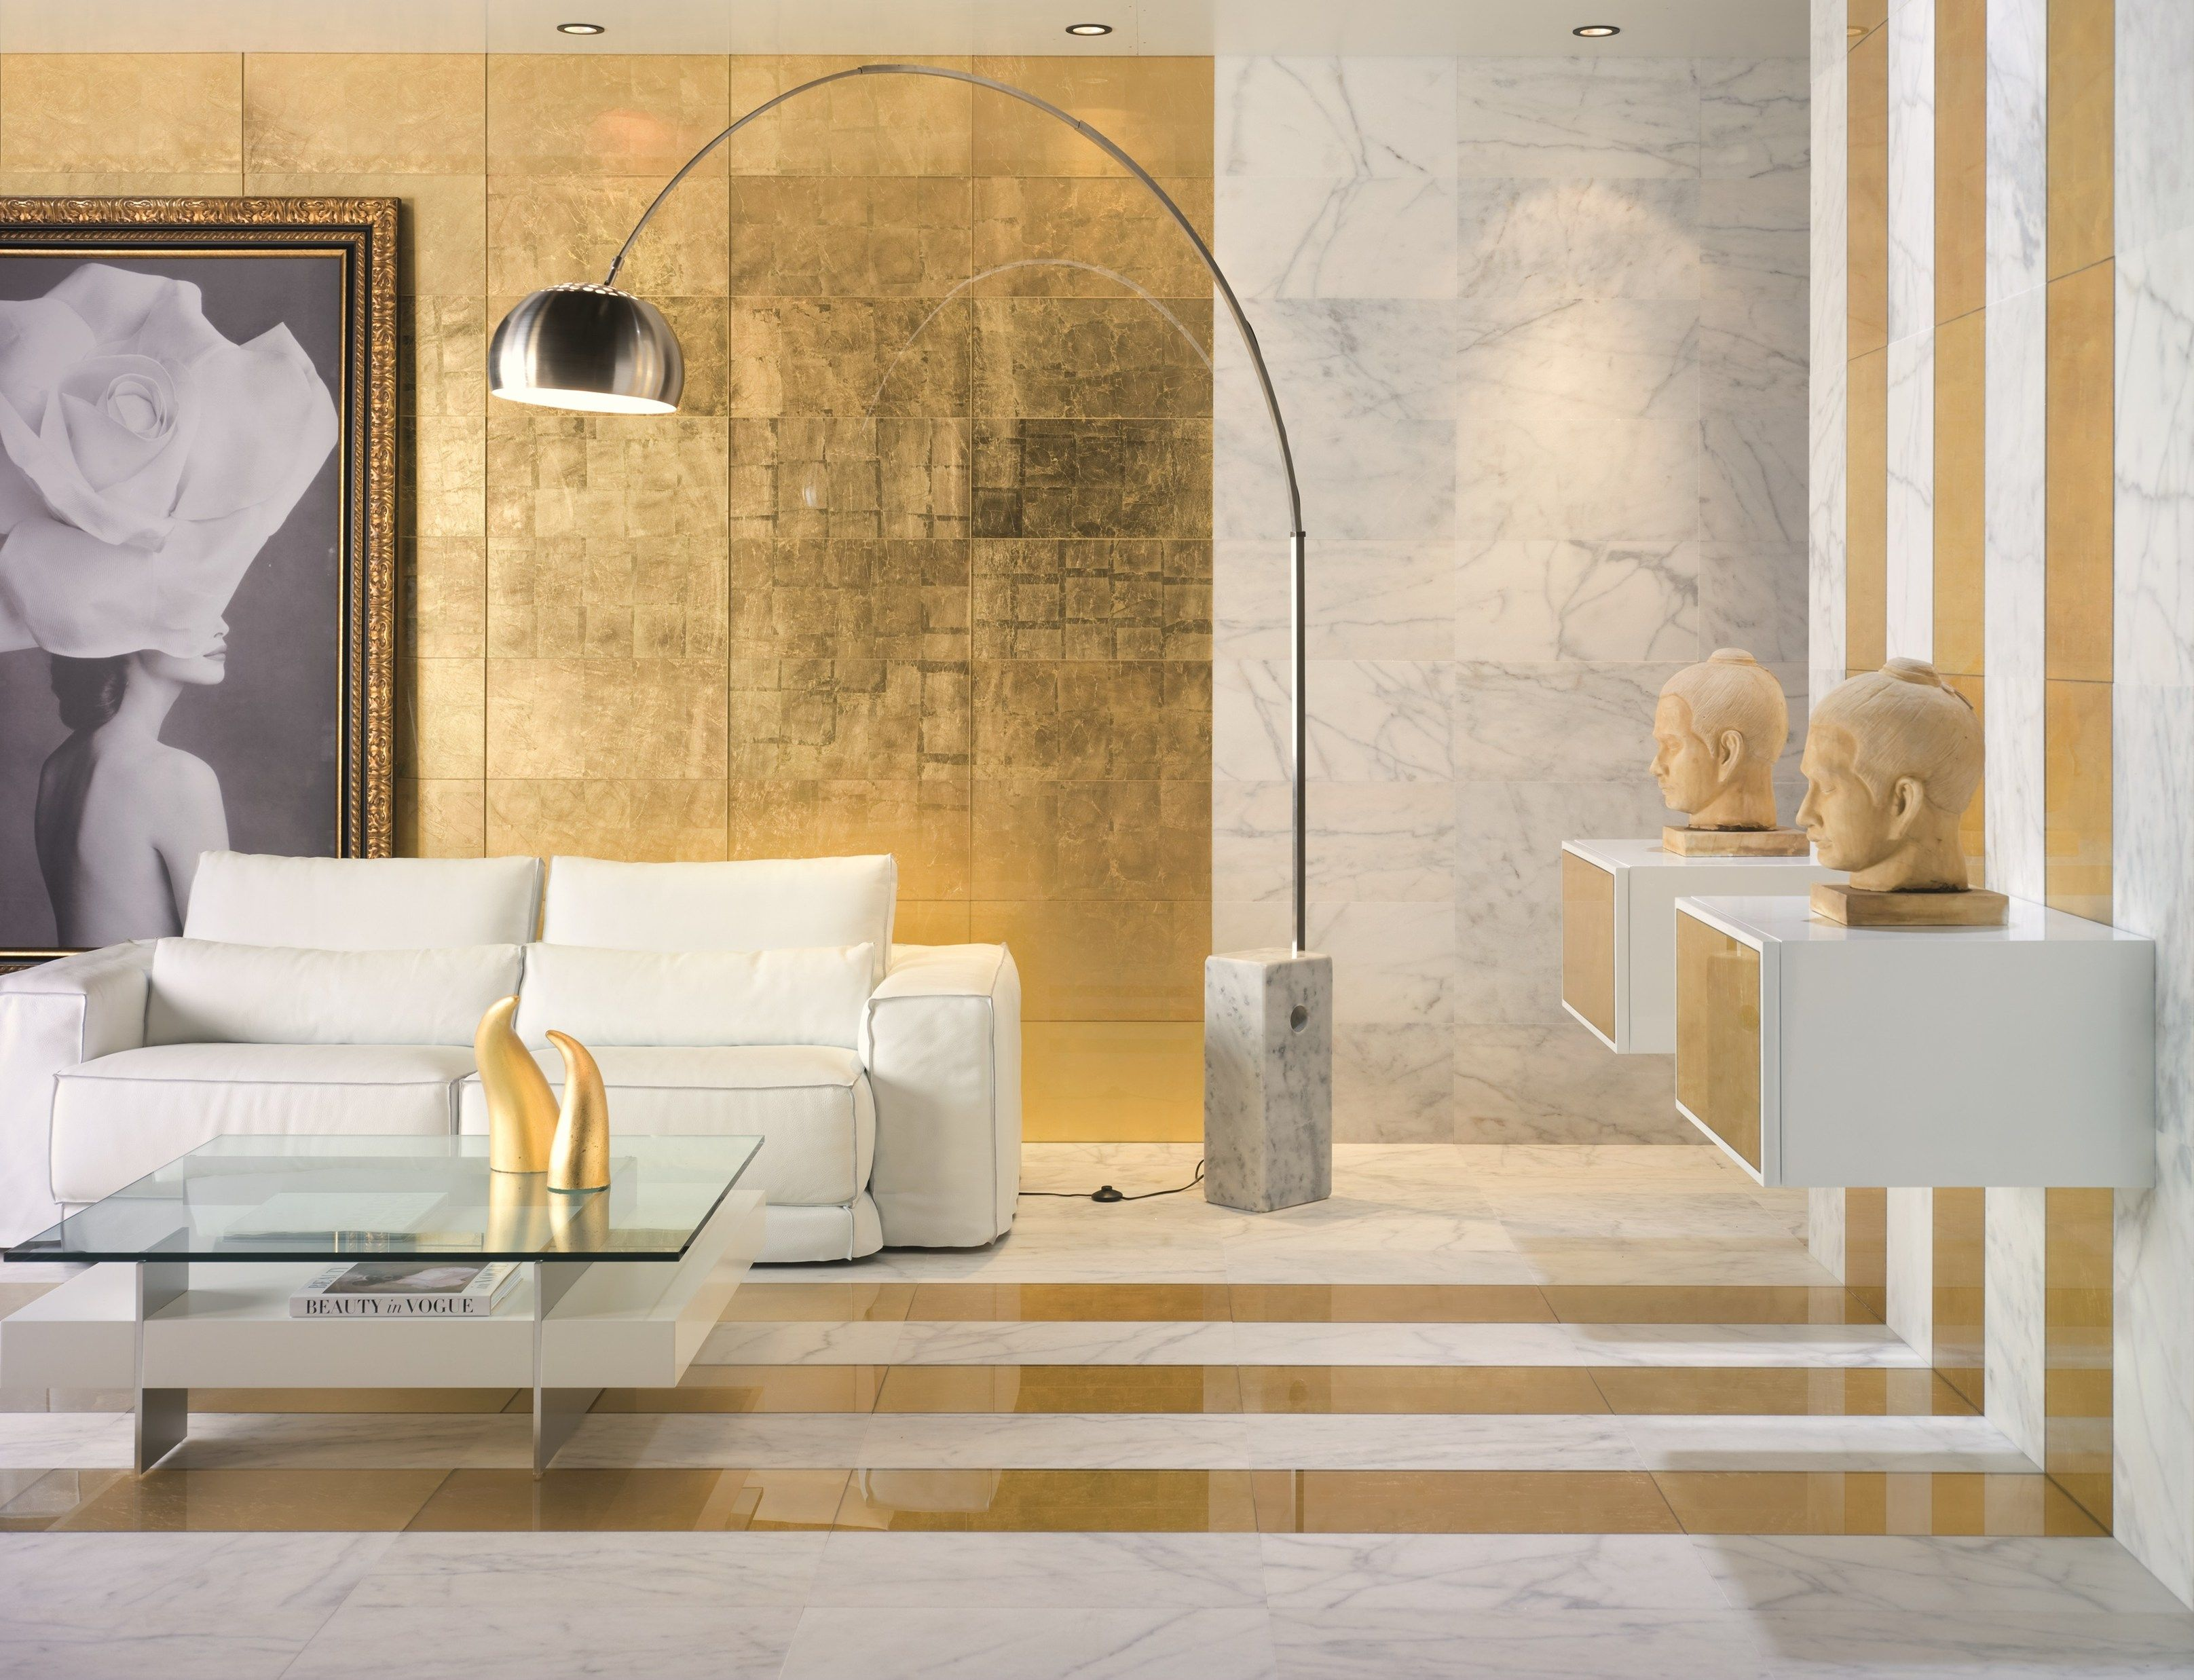 Indoor Gold Leaf Wallfloor Tiles Pan De Oro Megalos Vitra